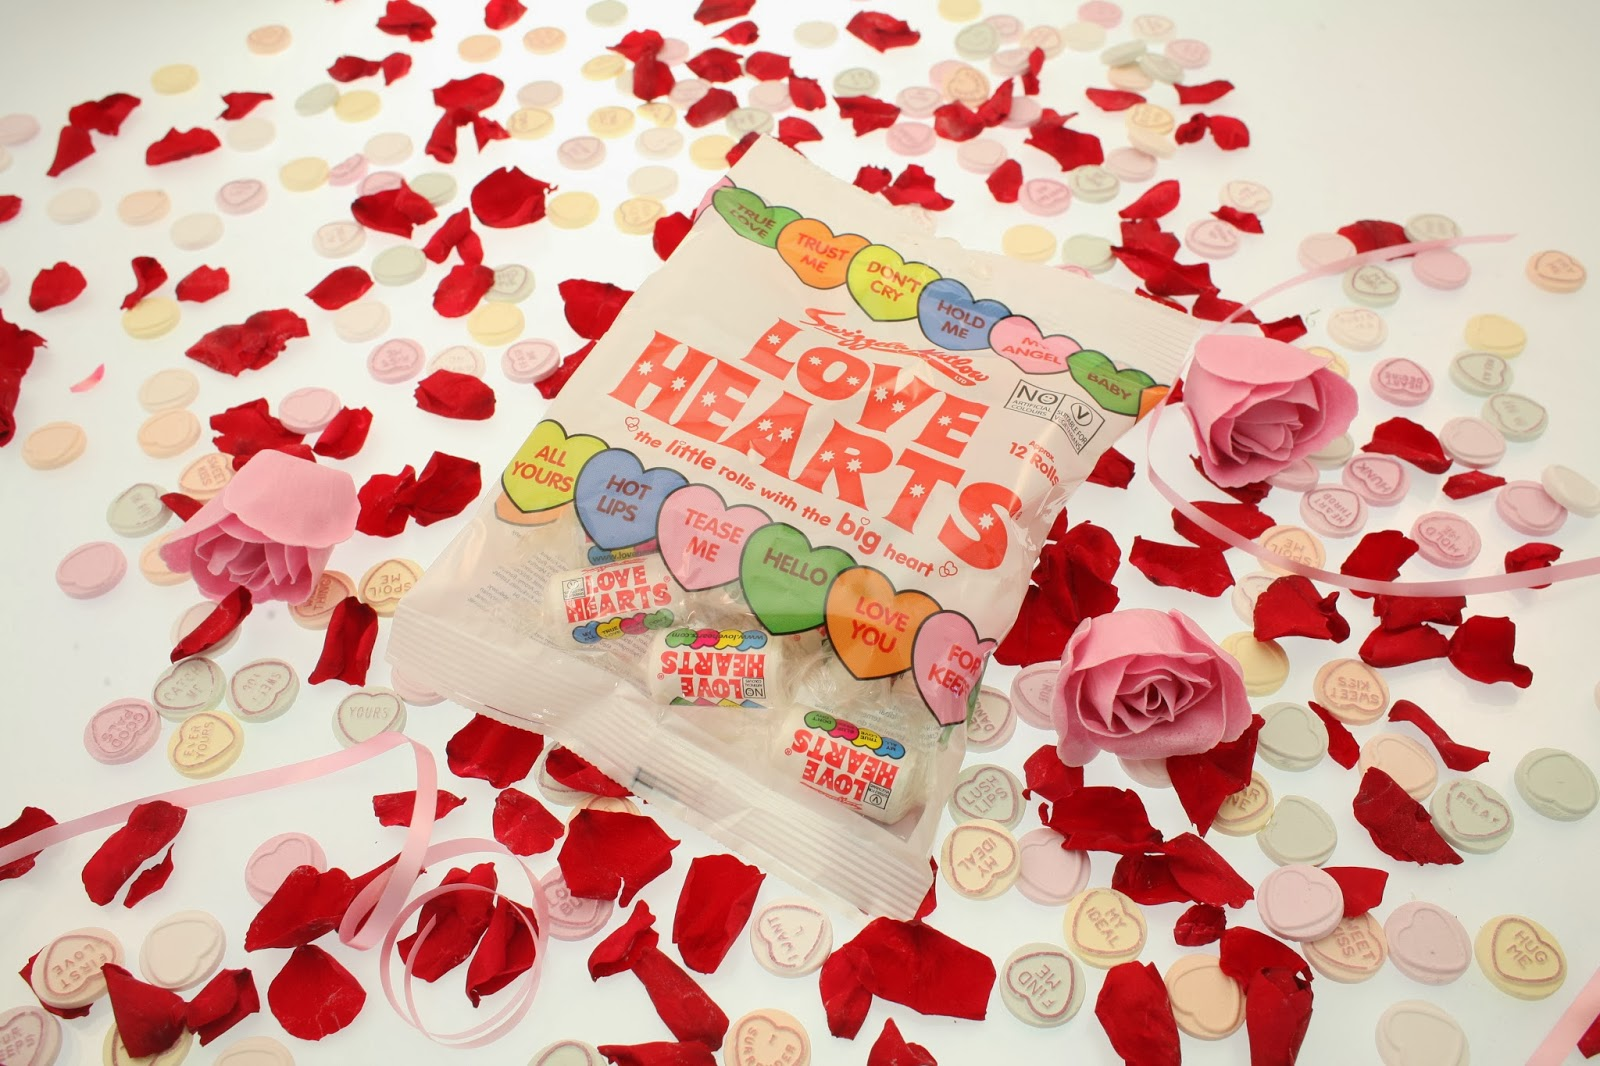 Love Hearts Mini Rolls Bag, Love Hearts Valentine's Day, Limited Edition Love Hearts Tin